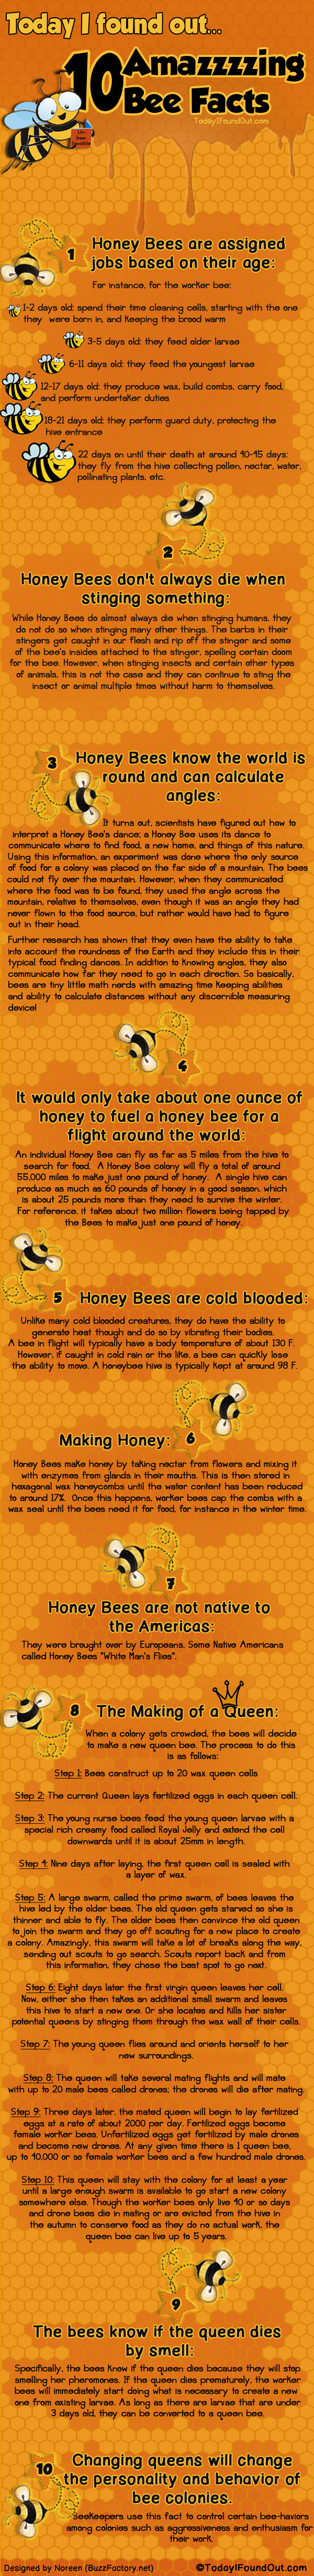 10 Amazzzzing Bee Facts Infographic